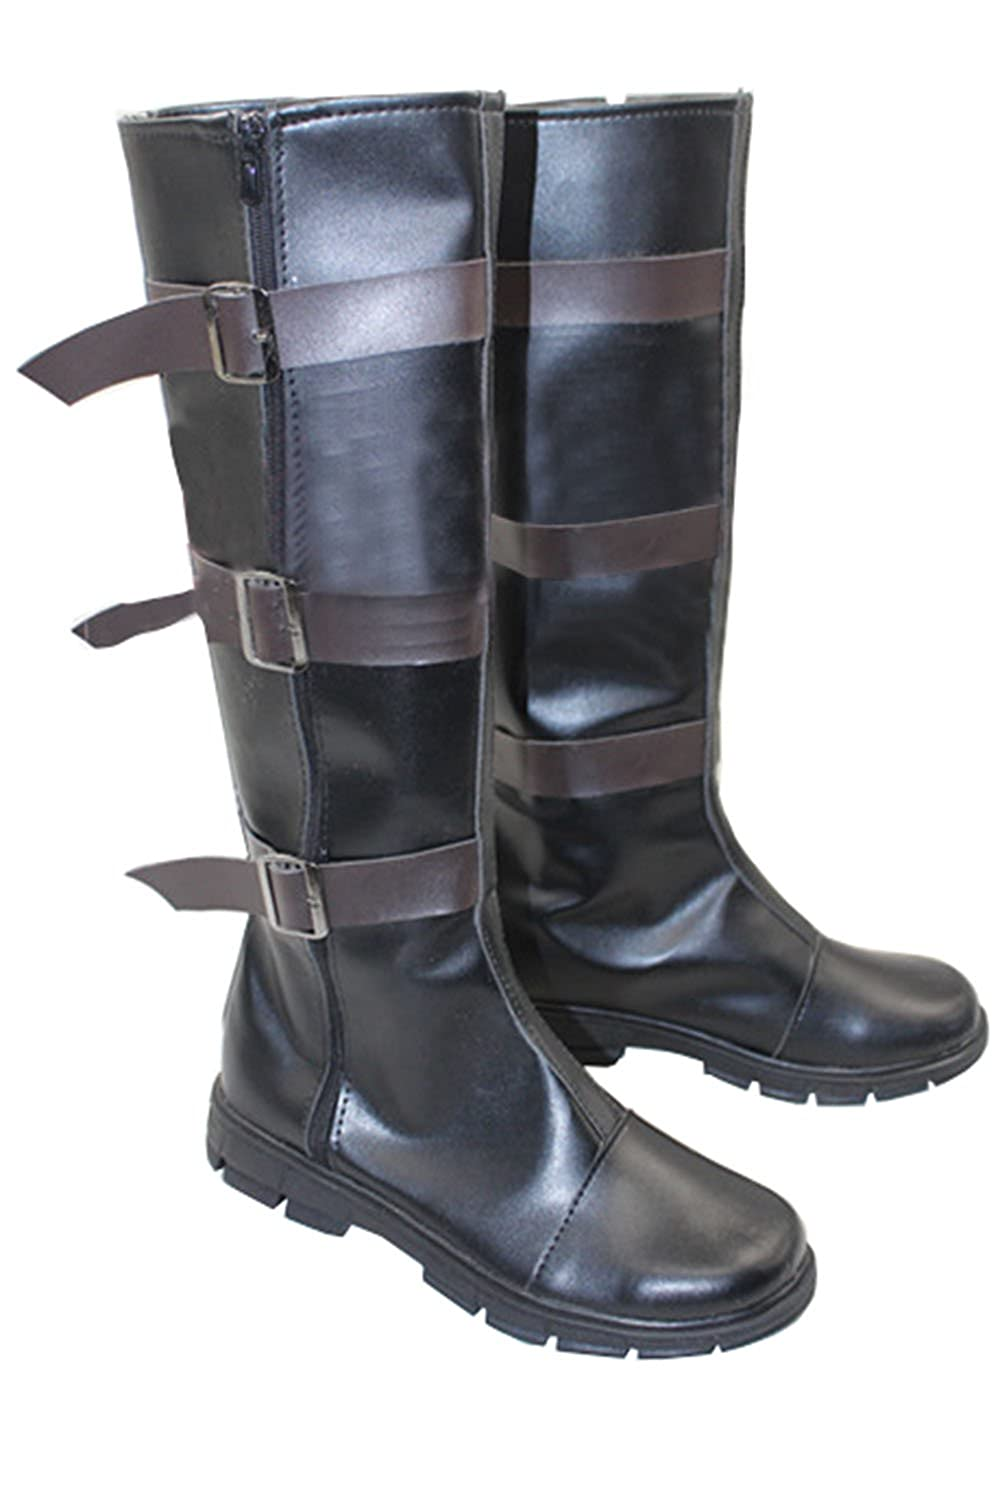 Deluxe Steve Roger Captain America Civil War Cosplay Costume Boots - DeluxeAdultCostumes.com